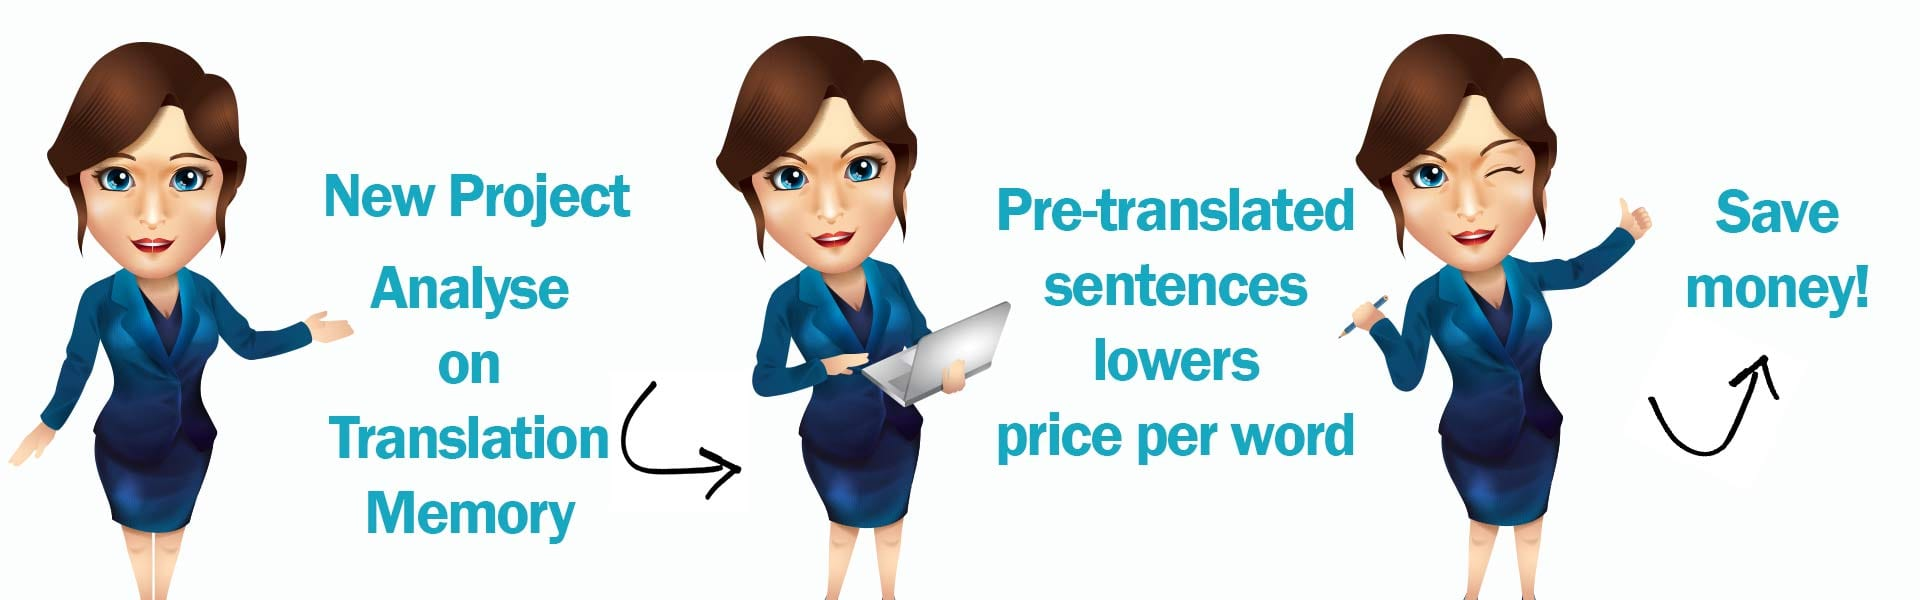 use translation memory to cut cost